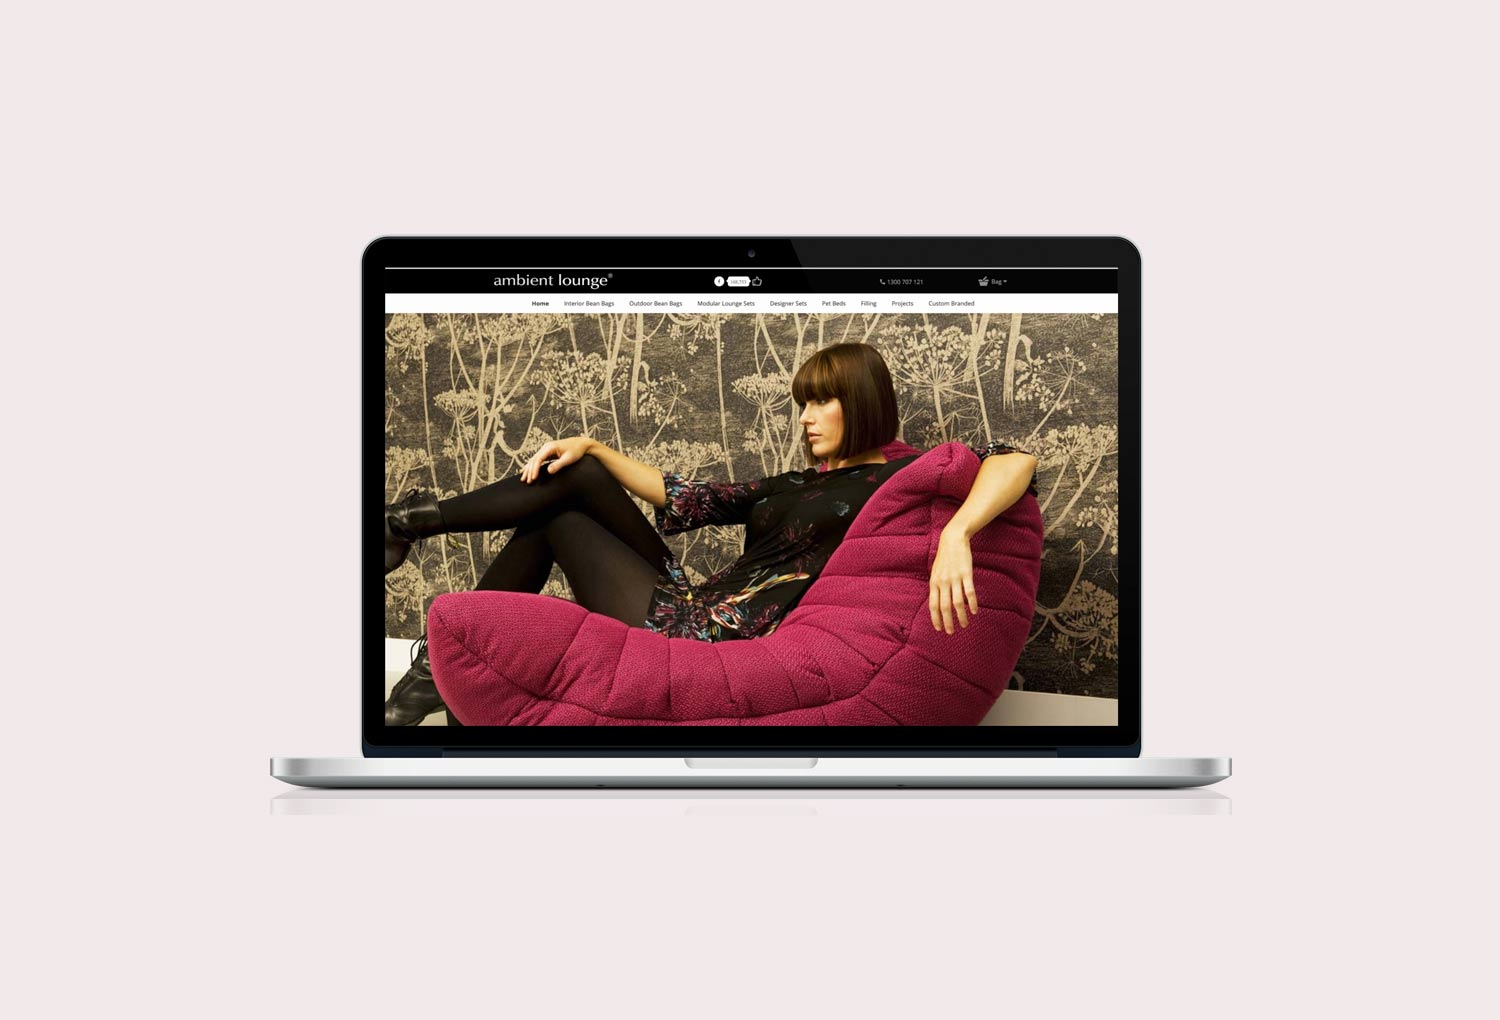 Ambient Lounge Online Home Store Website Design By Mango Tree Media